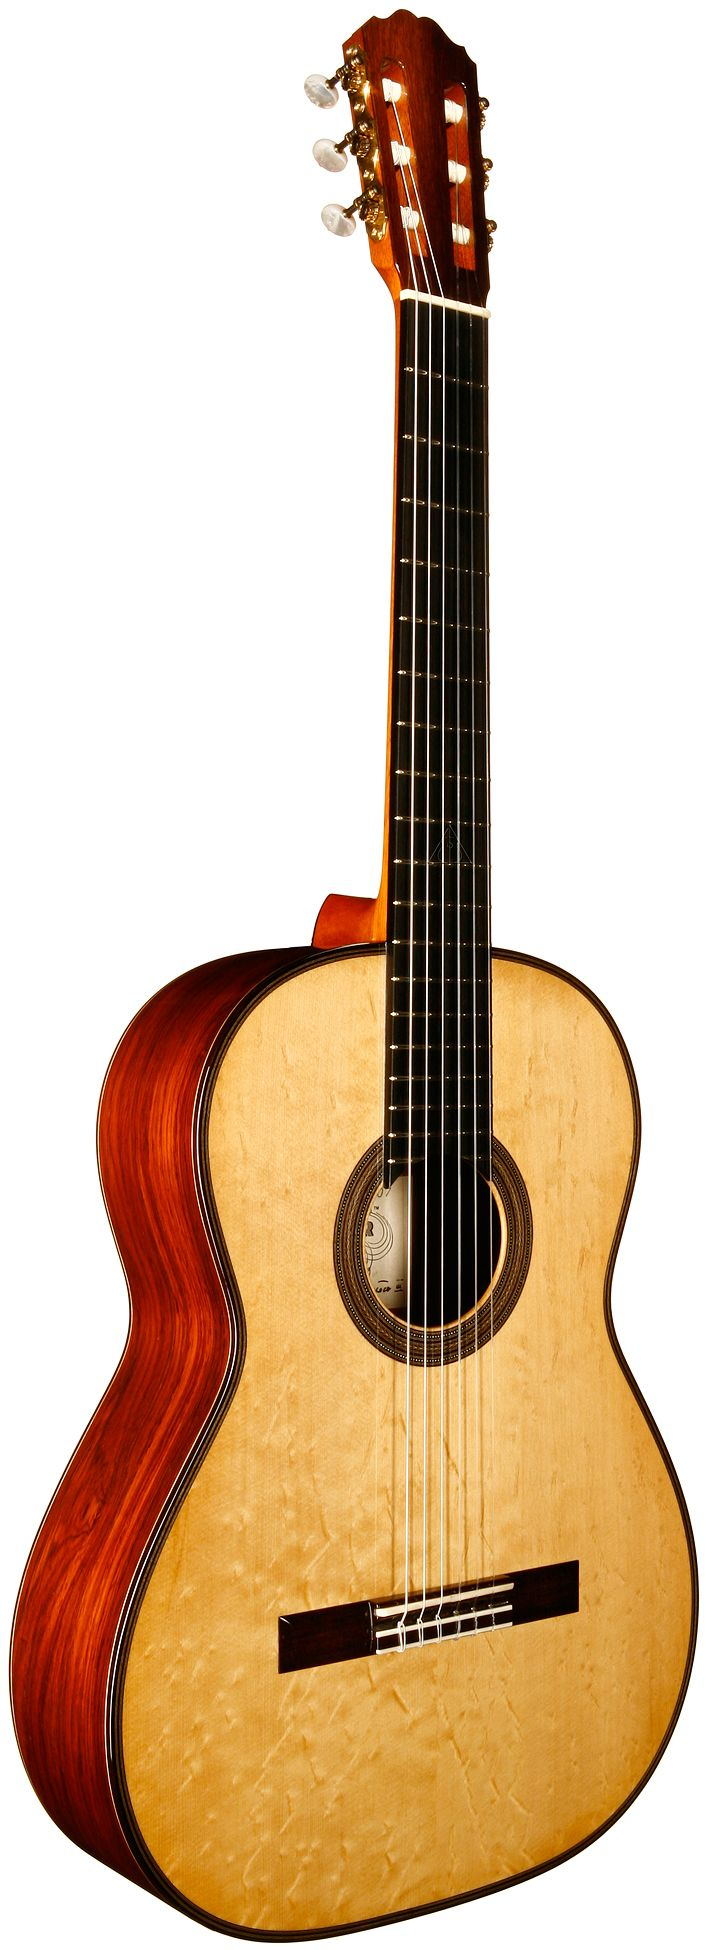 what is the best book for learning flamenco guitar ...